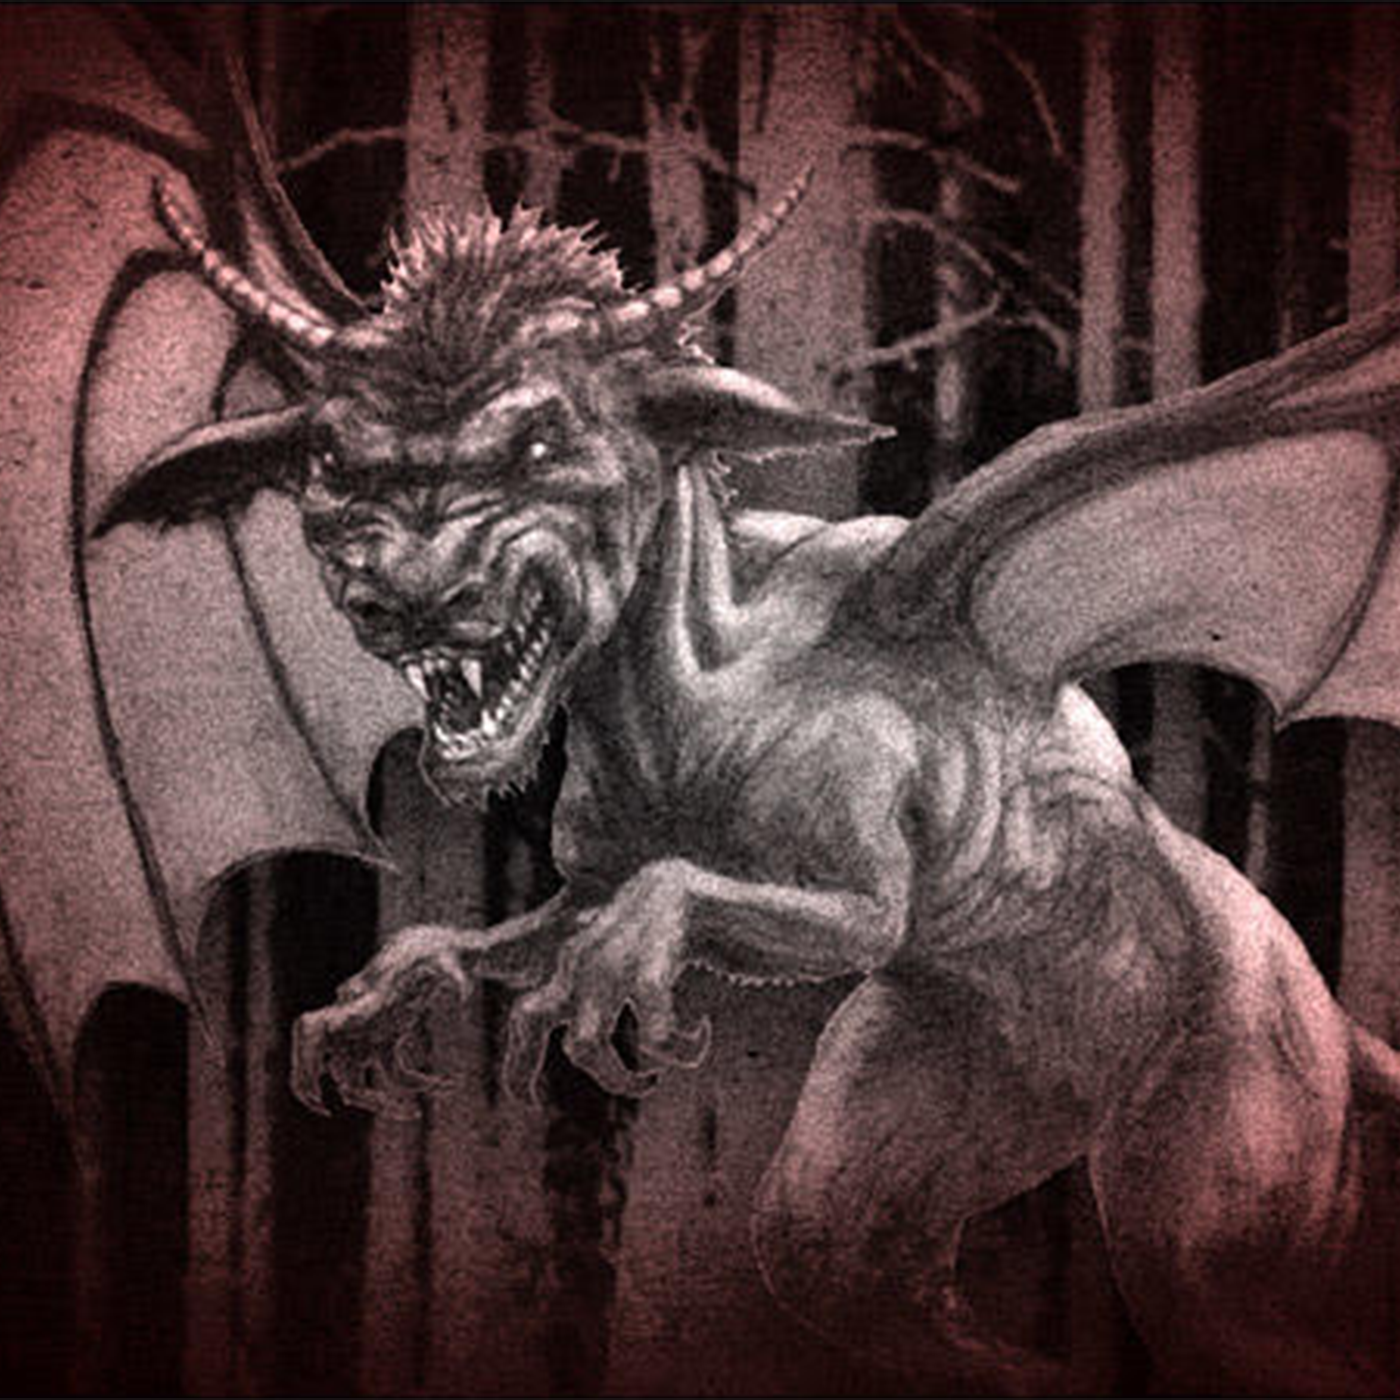 Episode 12: The Jersey Devil - The History Behind New Jersey's Most Famous Cryptid